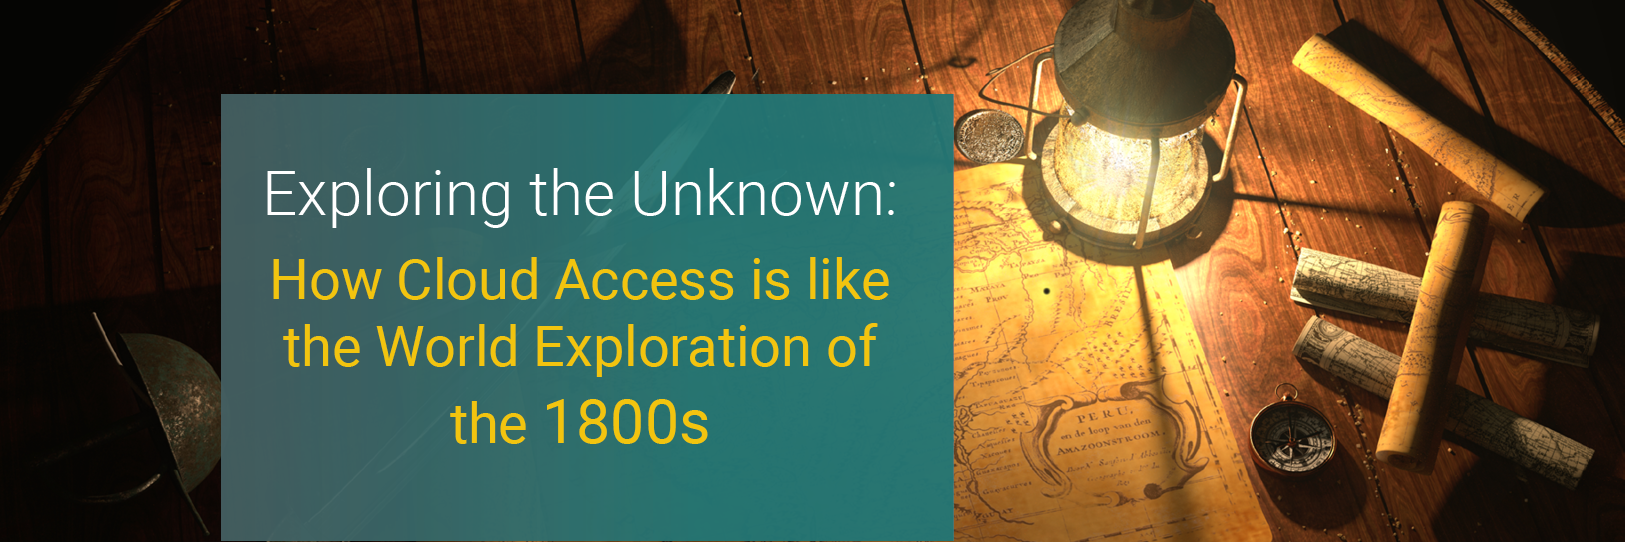 Exploring the Unknown: How Cloud Access is like the World Exploration of the 1800s